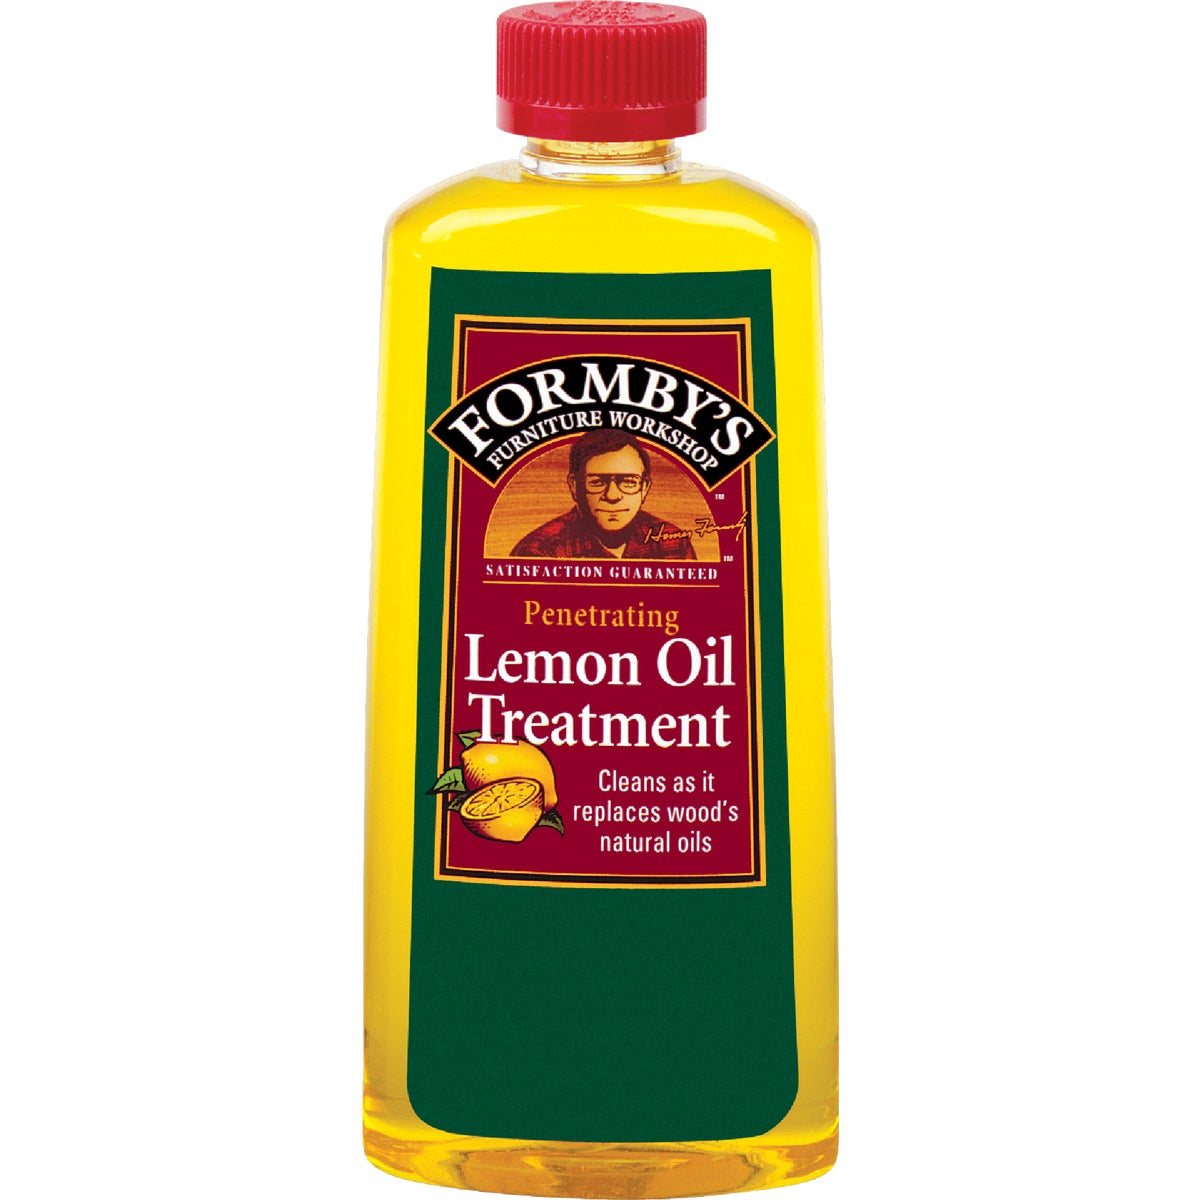 Formby's Lemon Oil Treatment, 30015